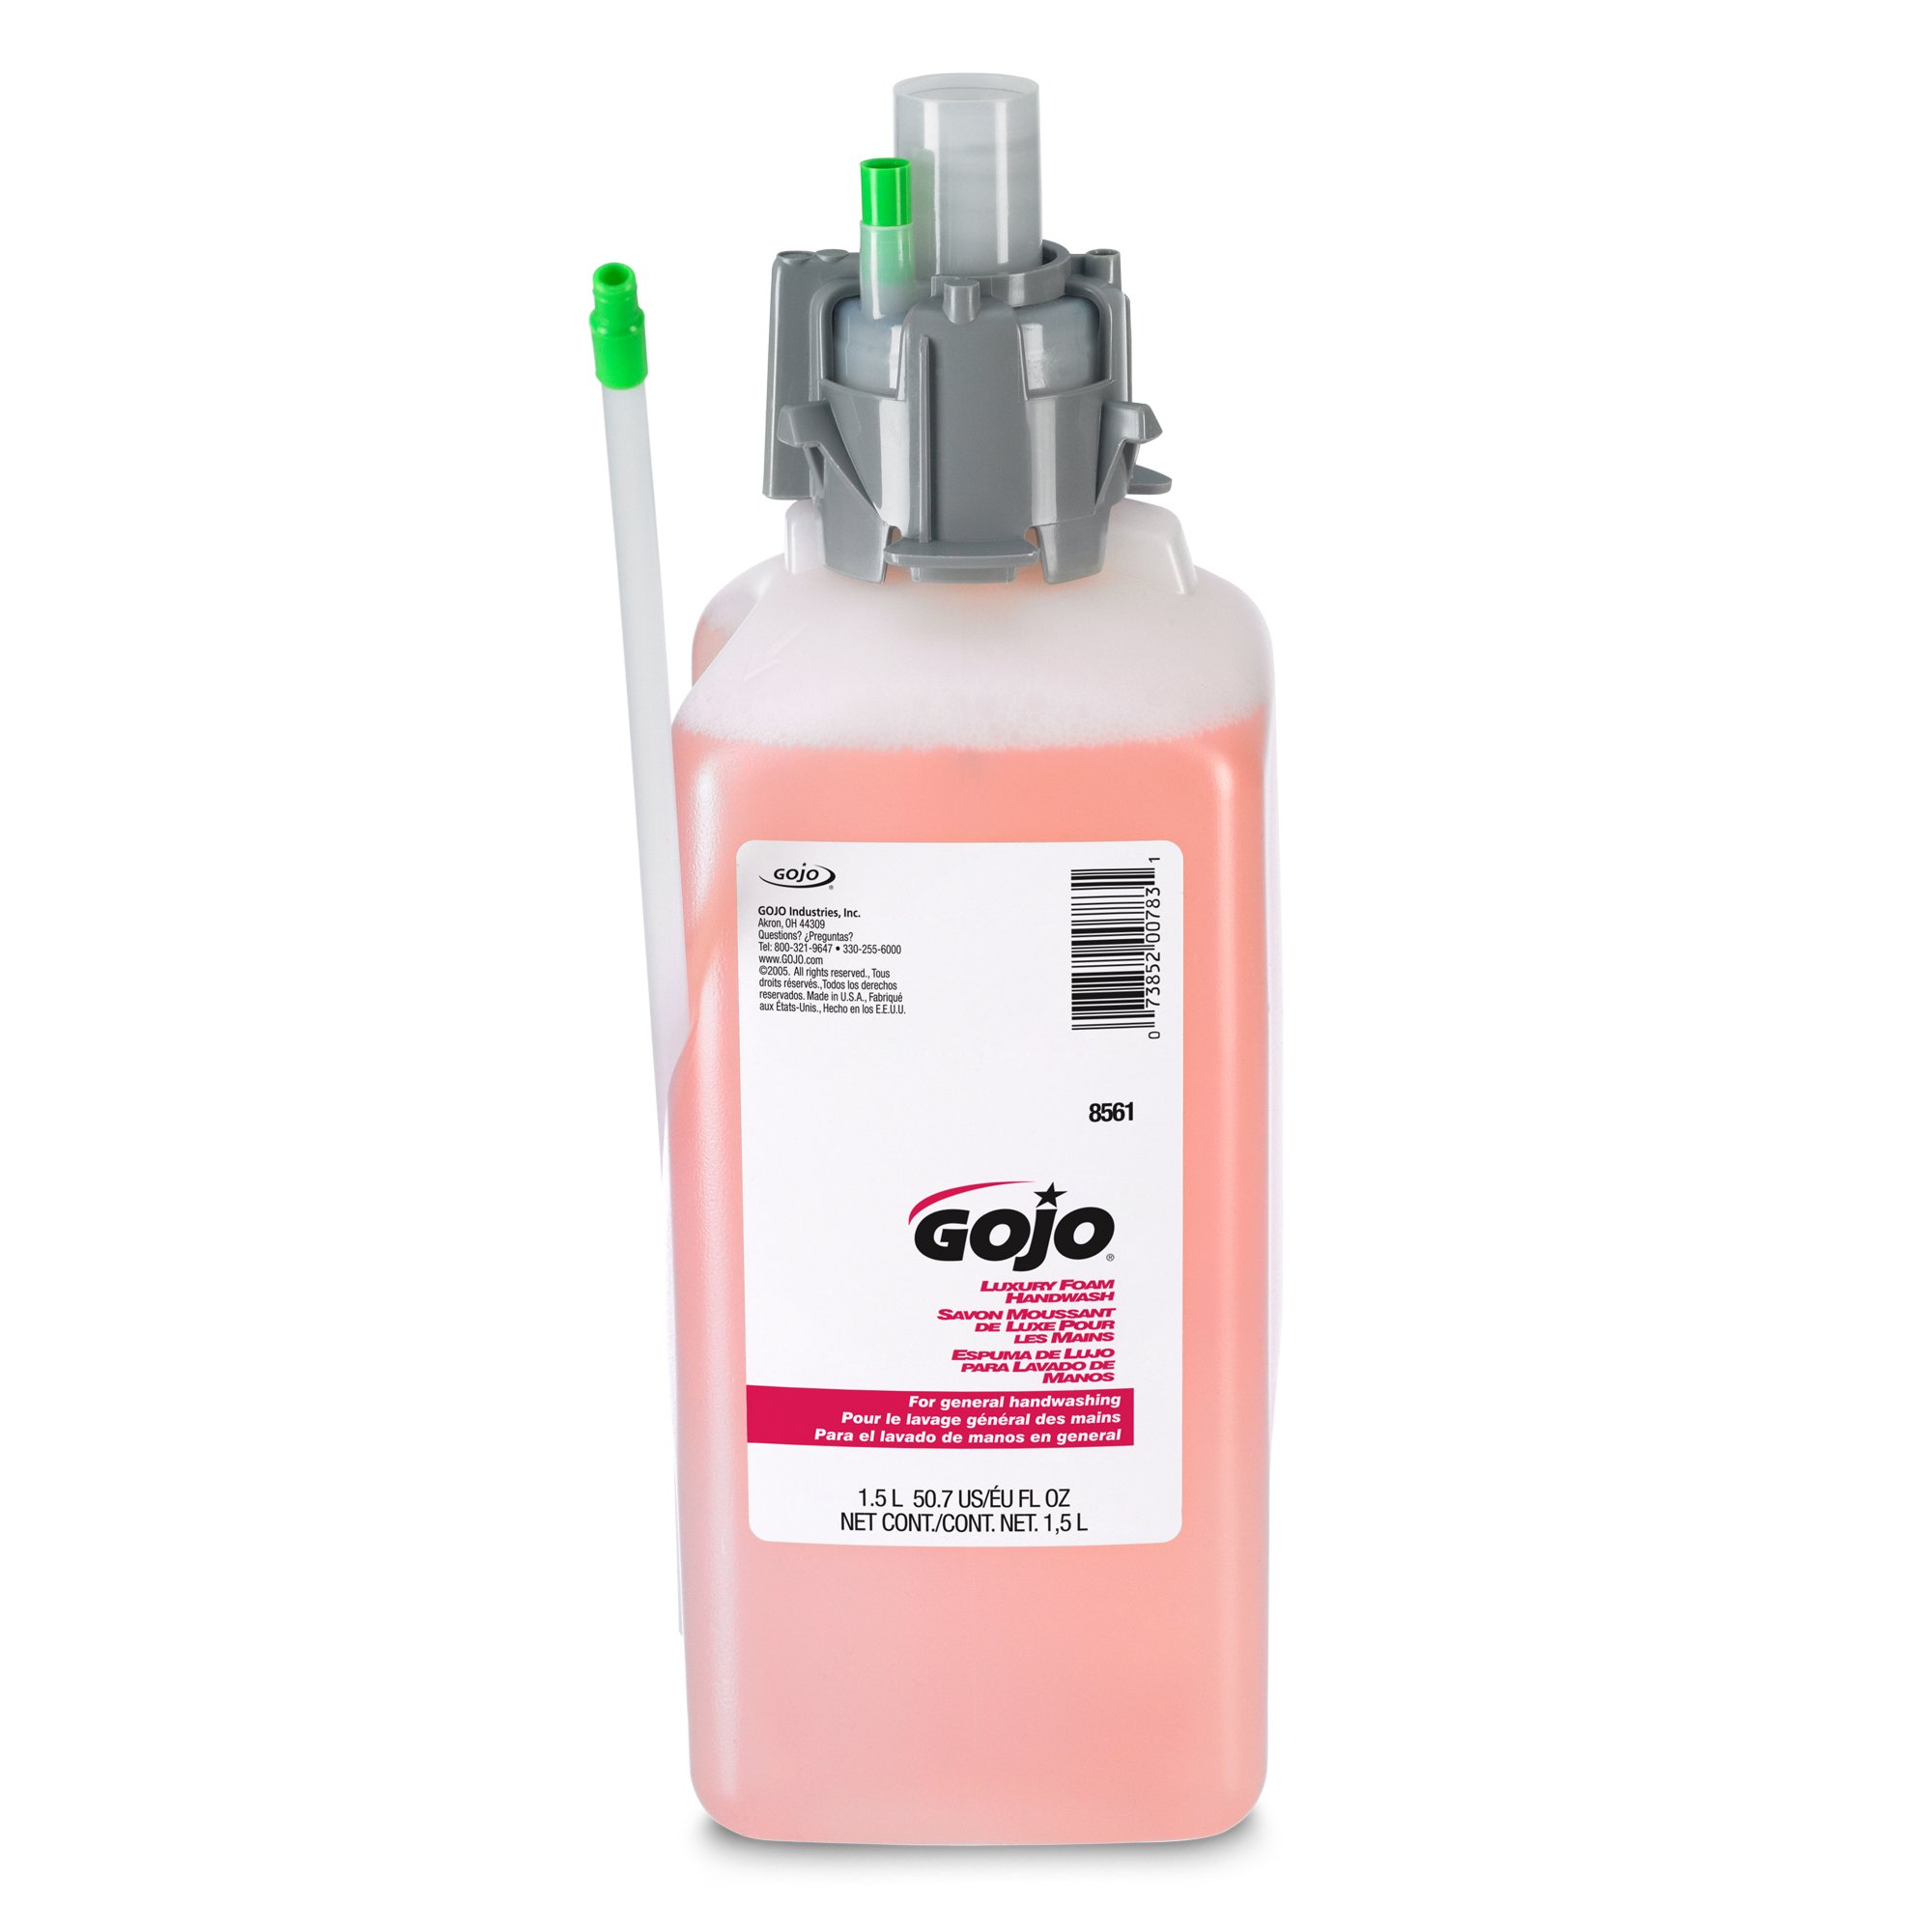 GOJO 856102CT CX & CXI Luxury Foam Hand Wash, Cranberry Liquid, 1500mL Refill (Pack of 2),Compatible with Dispenser #8520-01, 8500-01, 8530-01